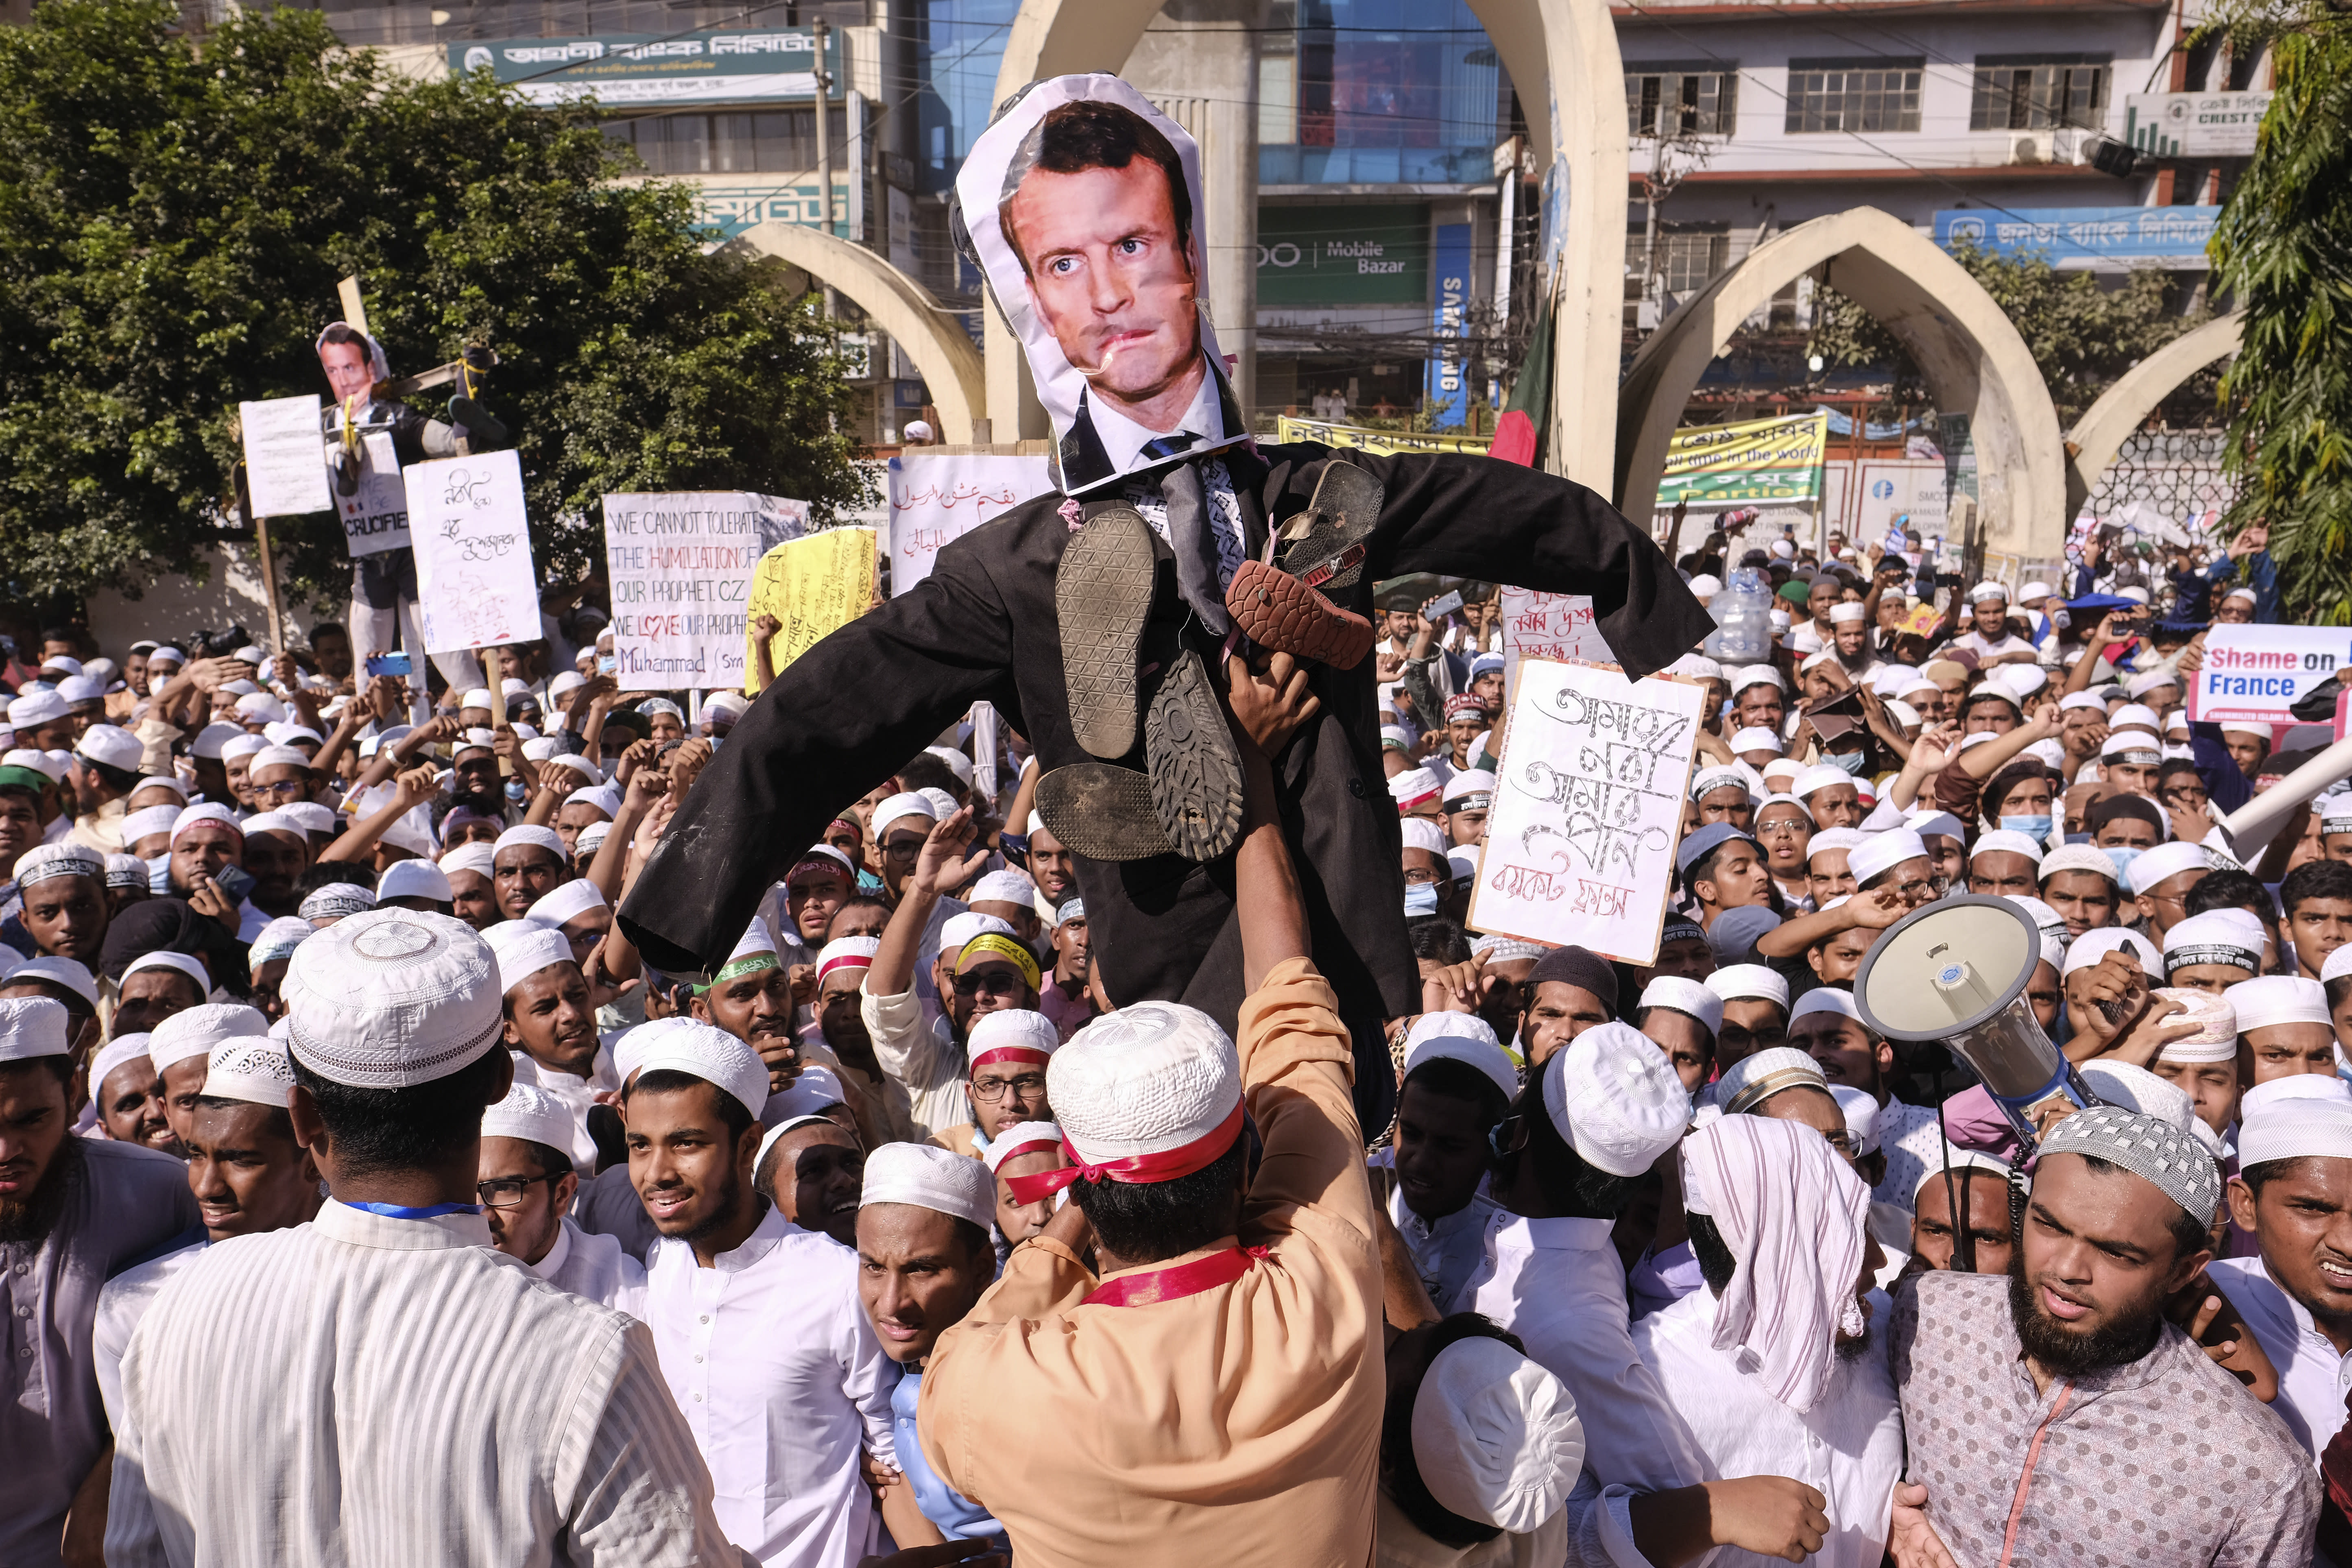 Supporters of Islamist parties carry an effigy of French President Emmanuel Macron during a protest after Friday prayers in Dhaka, Bangladesh, Friday, Oct. 30, 2020. Thousands of Muslims and activists marched through streets and rallied across Bangladesh's capital on Friday against the French president's support of secular laws that deem caricatures of the Prophet Muhammad as protected under freedom of speech. (AP Photo/Mahmud Hossain Opu)